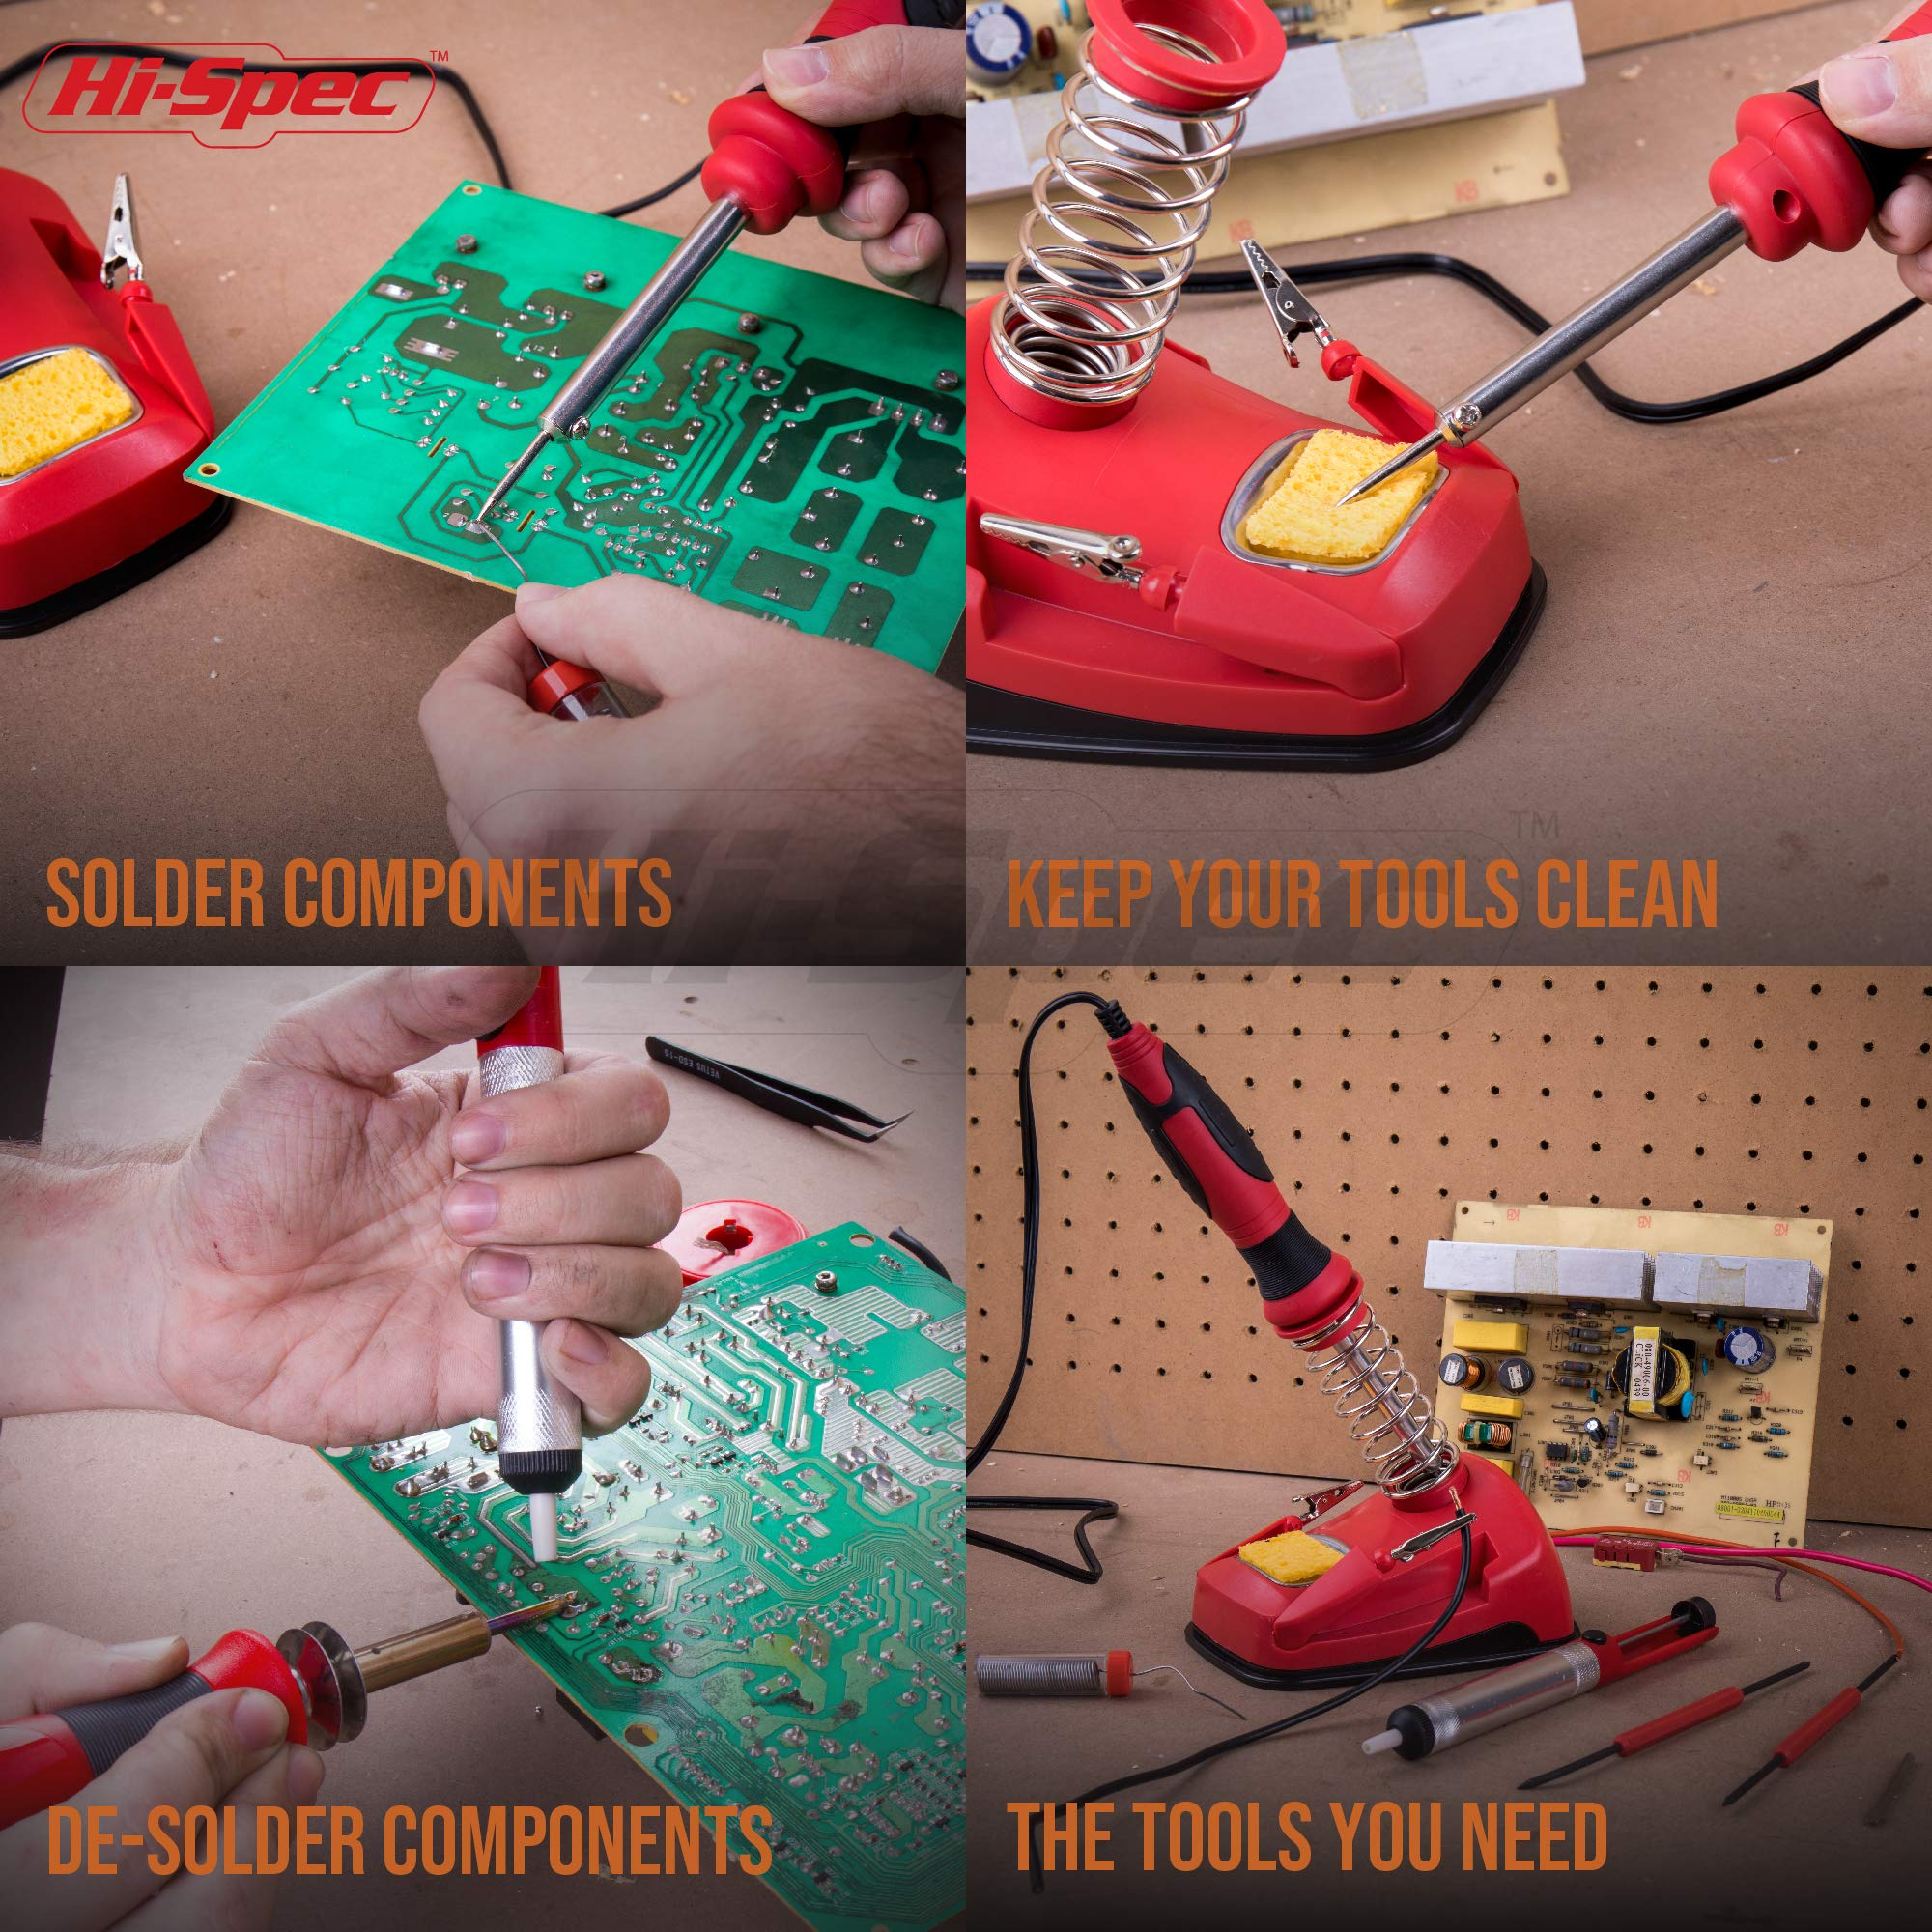 Hi-Spec All-In-One 30W Soldering Station inc. Soldering Iron, Helping Hands & 9pc Accessory Set - Desoldering Pump, Tin Alloy Solder, De-Solder Alloy & 2pc Solder Assist Tools by Hi-Spec (Image #5)